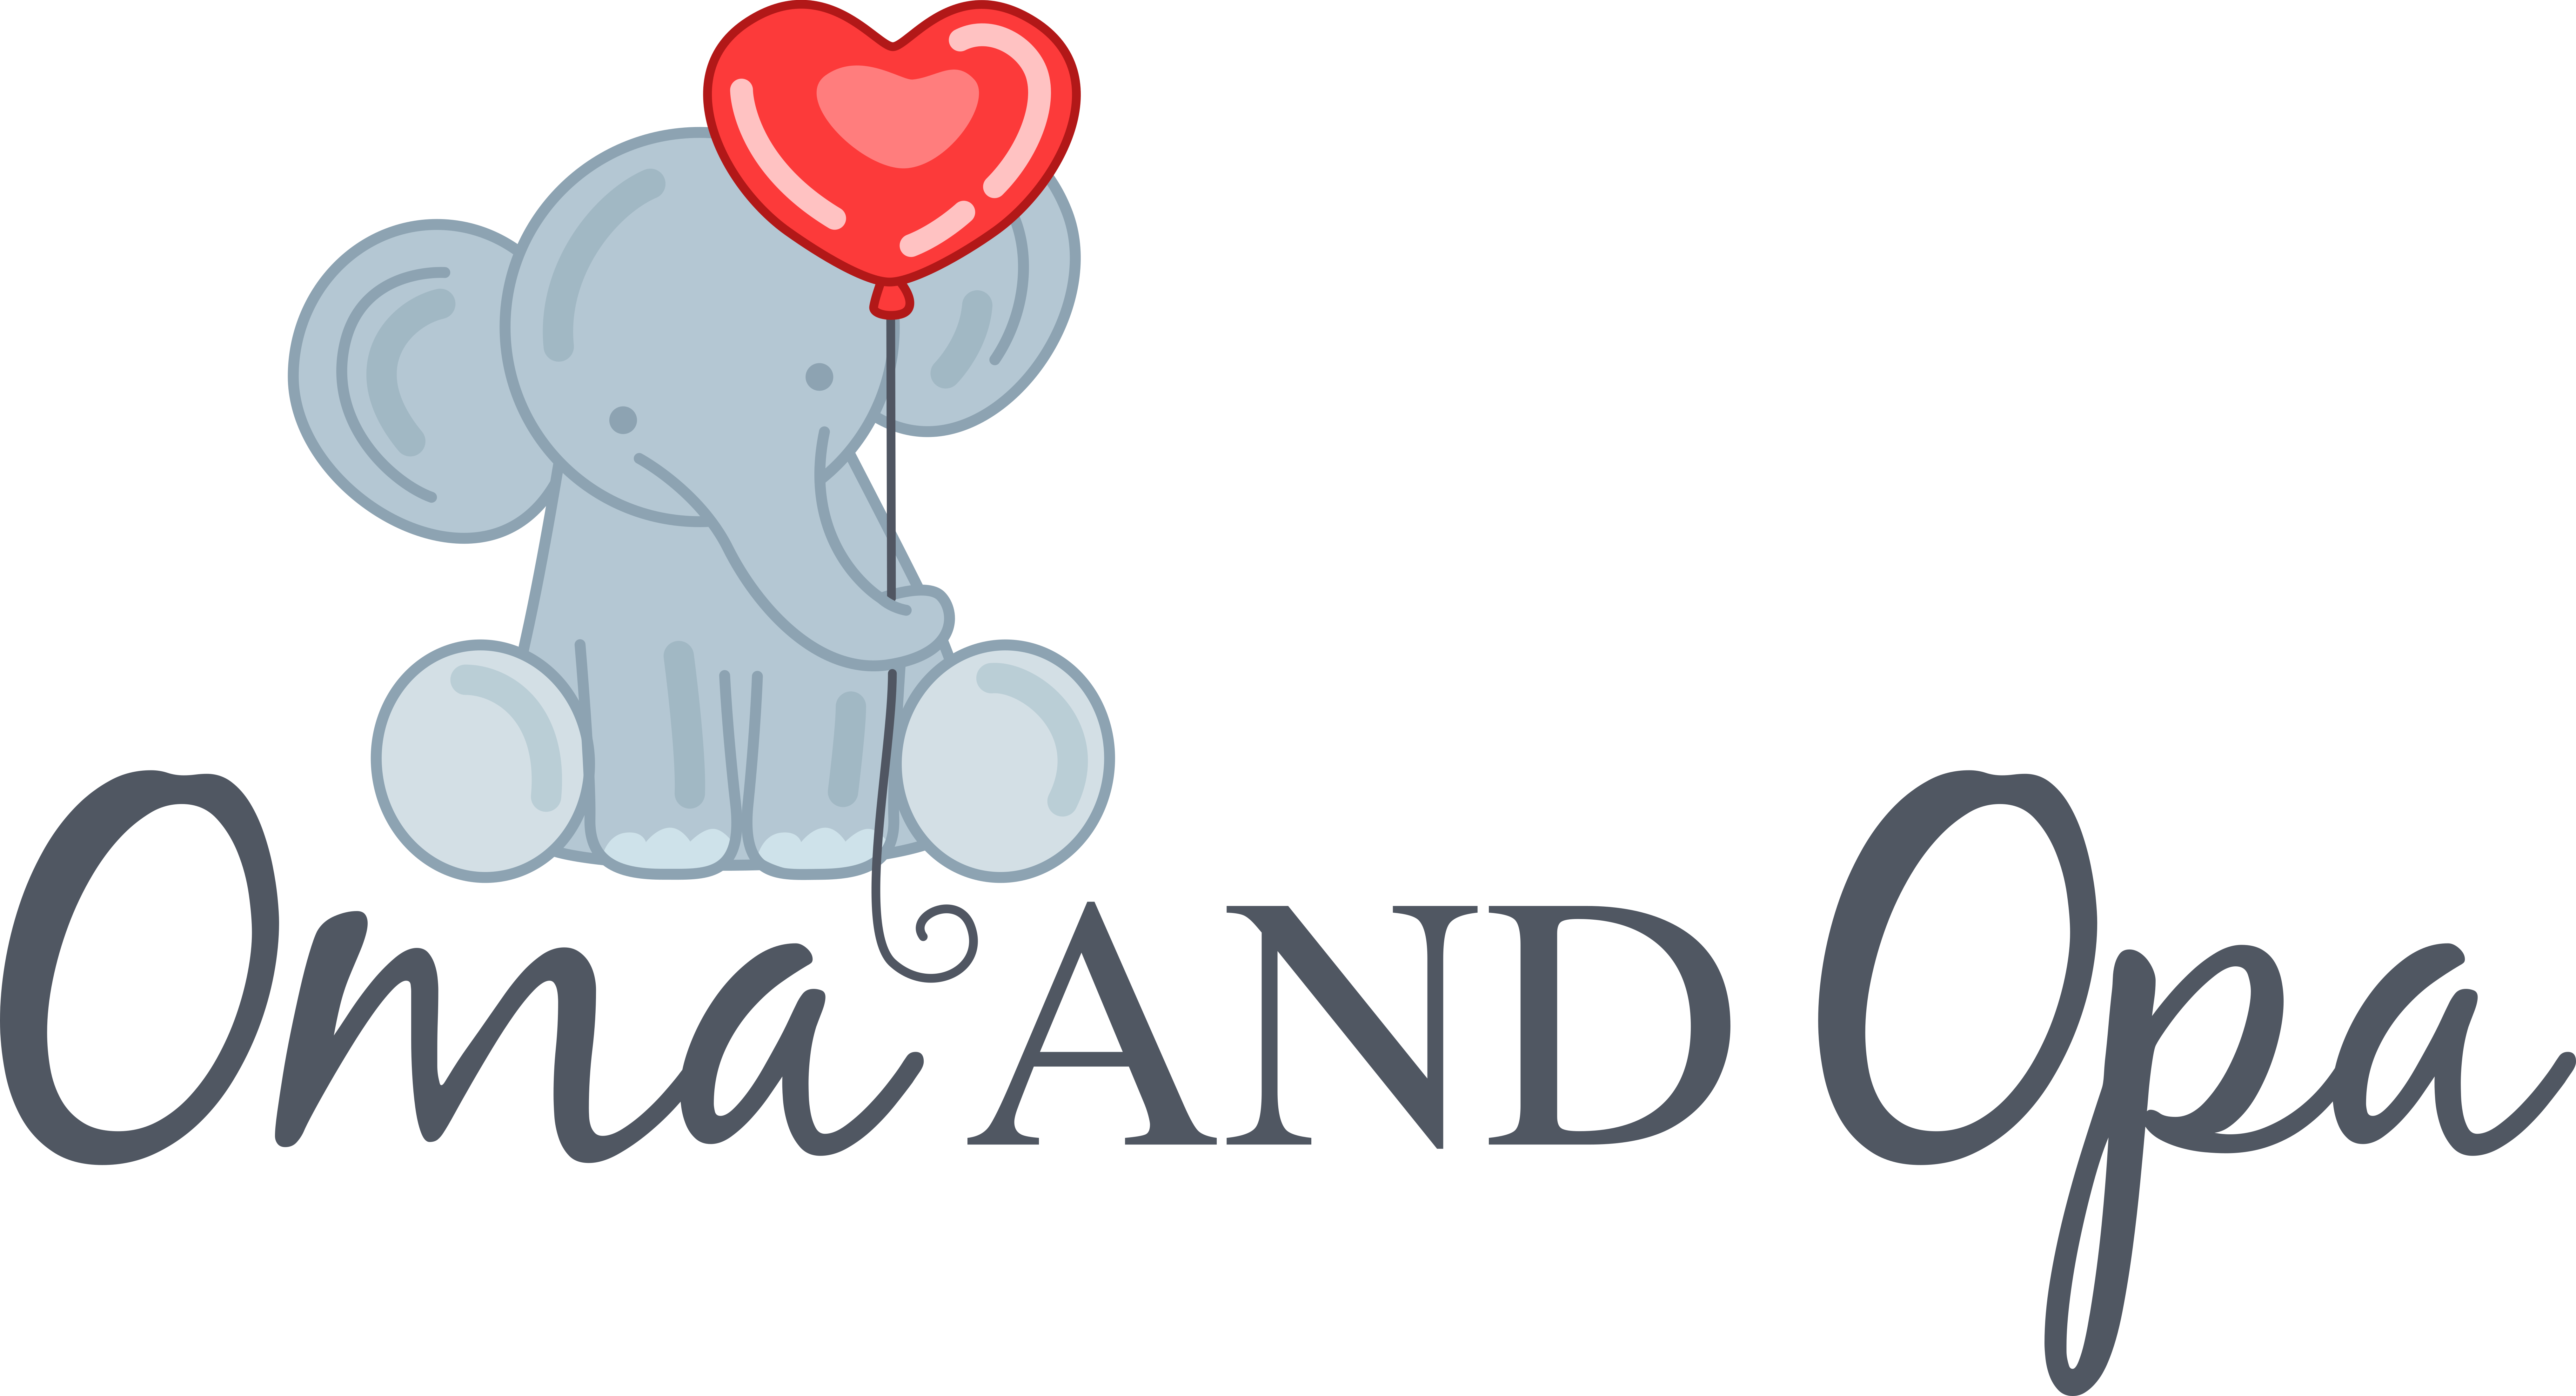 Oma und opa clipart transparent download About Us - Oma and Opa Baby transparent download